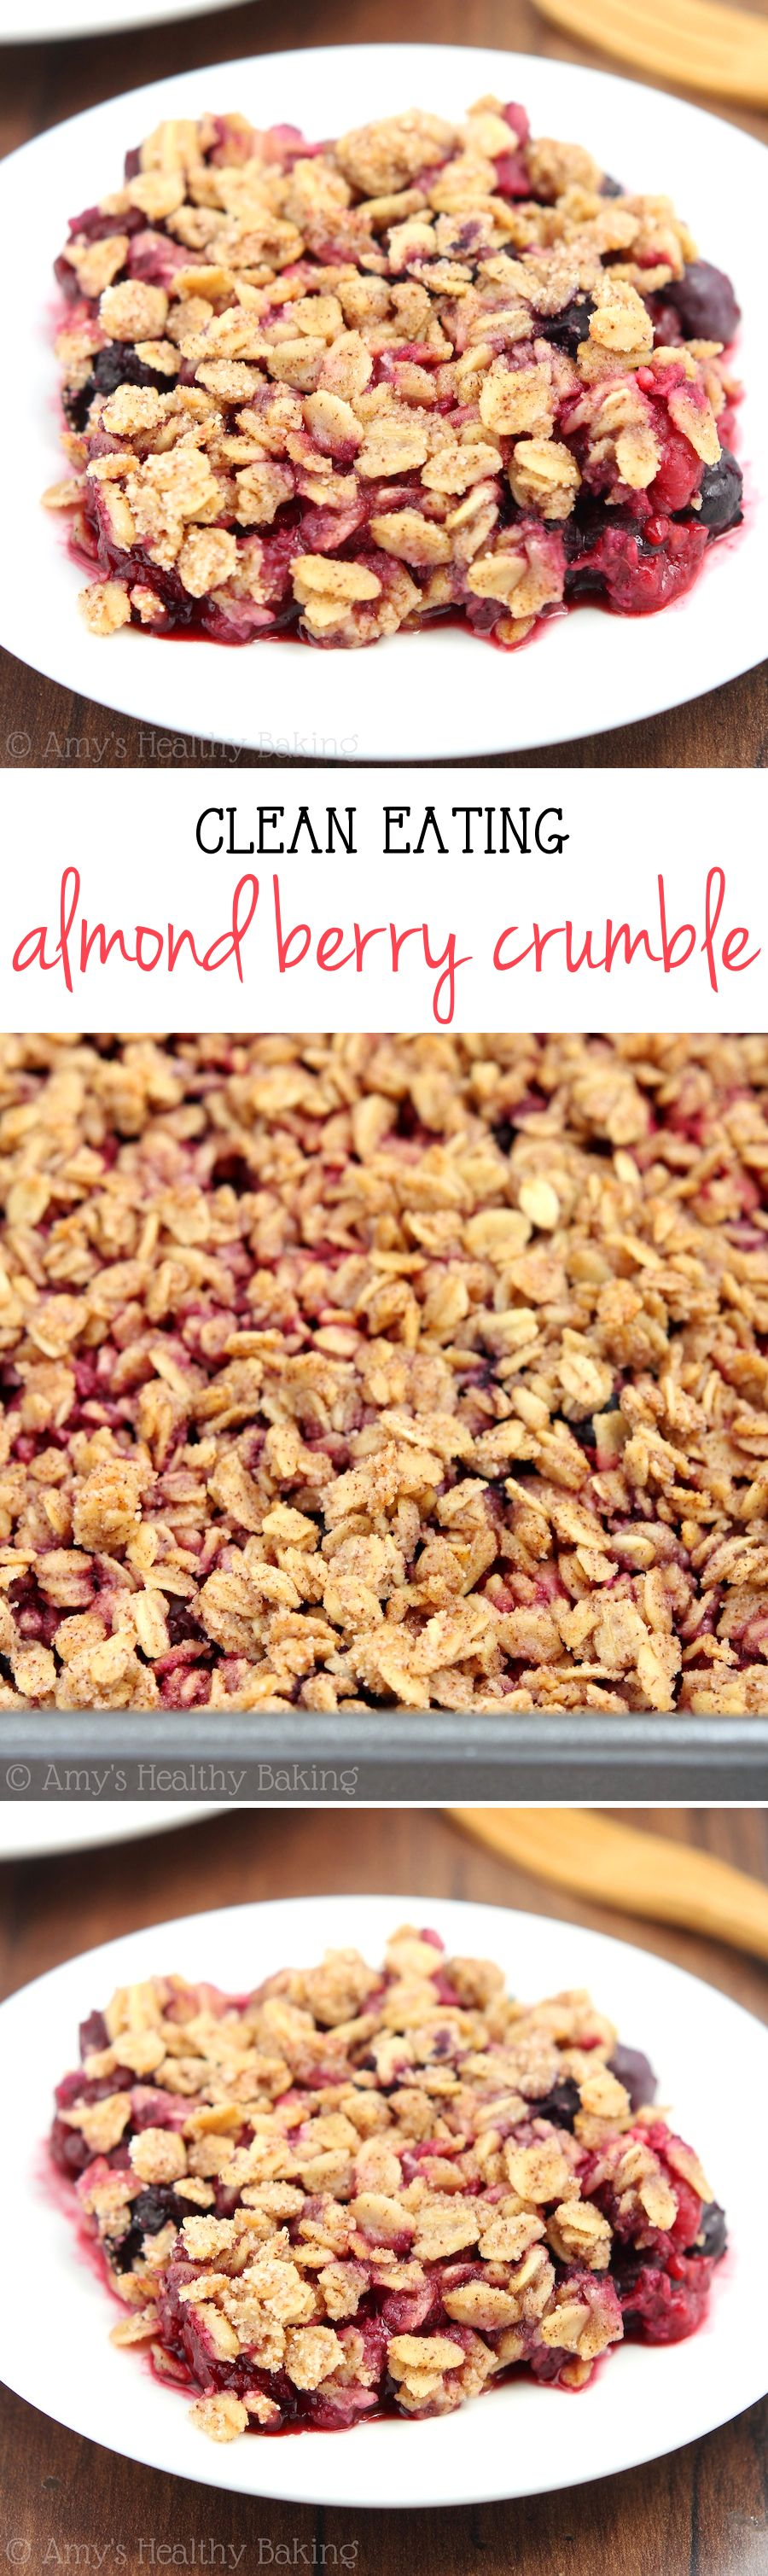 Clean Almond Berry Crumble